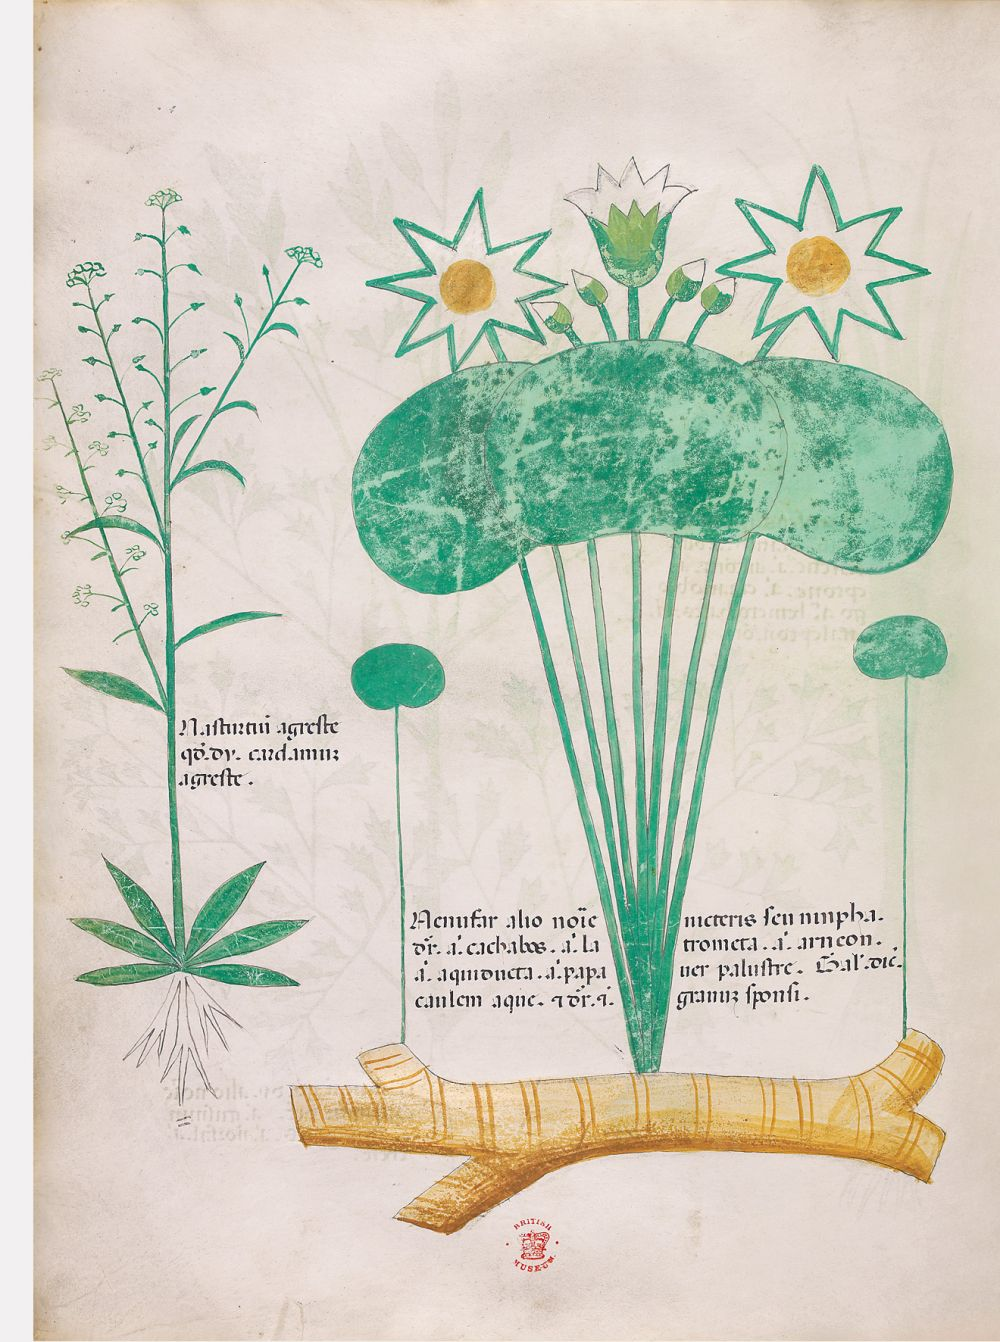 Tractatus de Herbis - Sloane 4016 f. 64v: Field pepperweed; white waterlily